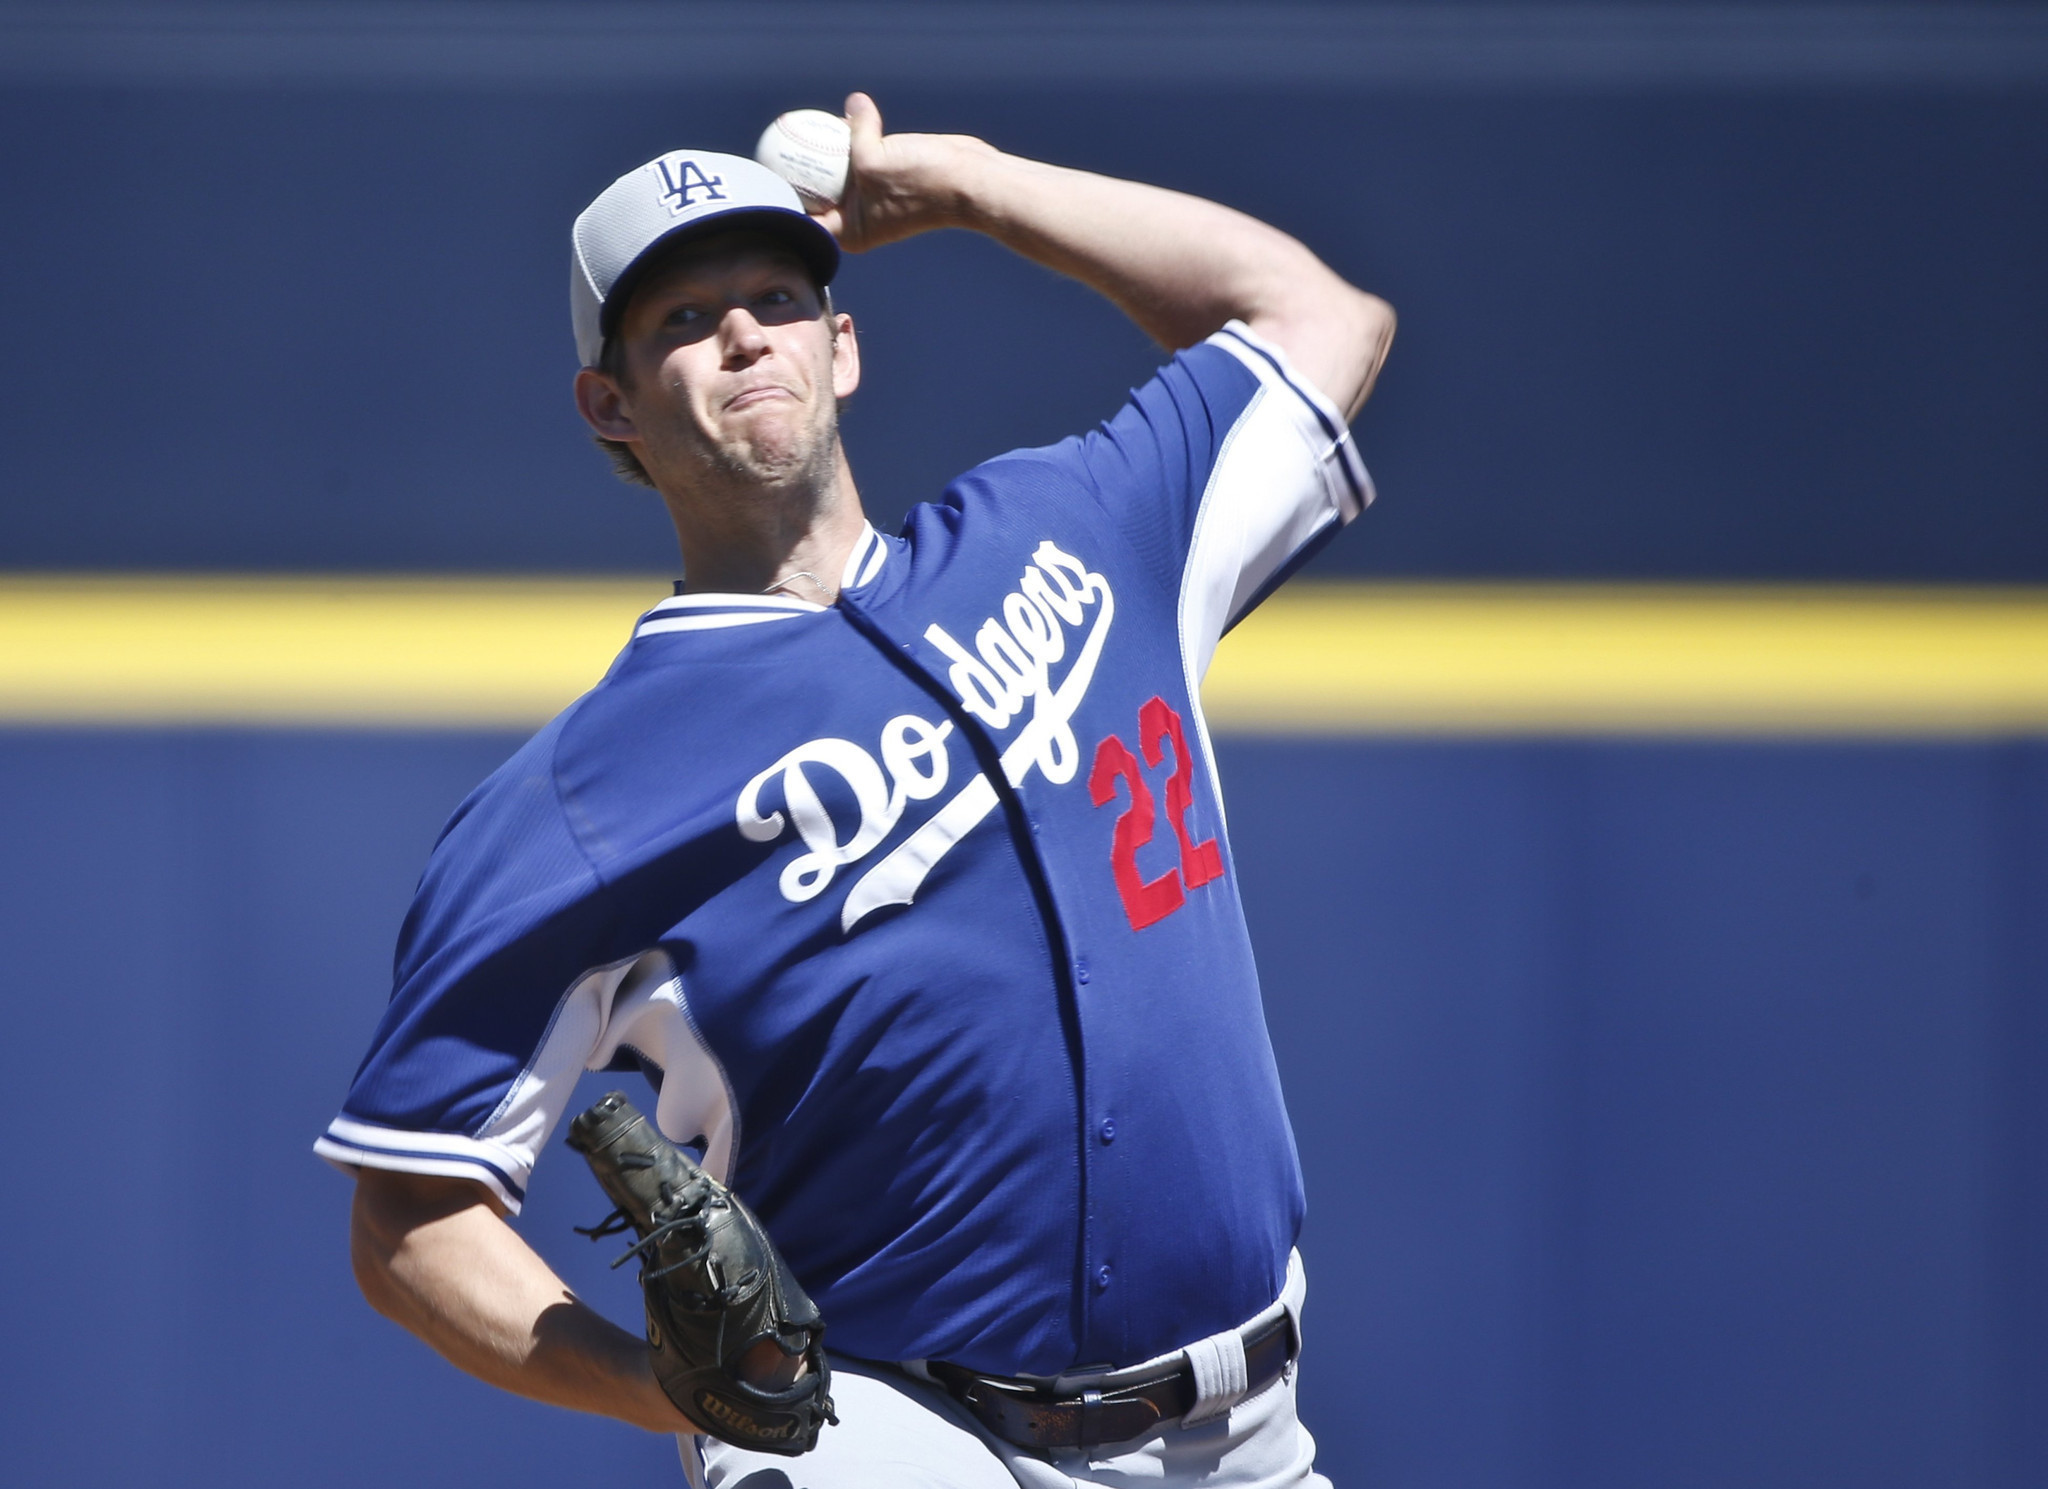 Clayton Kershaw finishes a sharp spring for the Dodgers